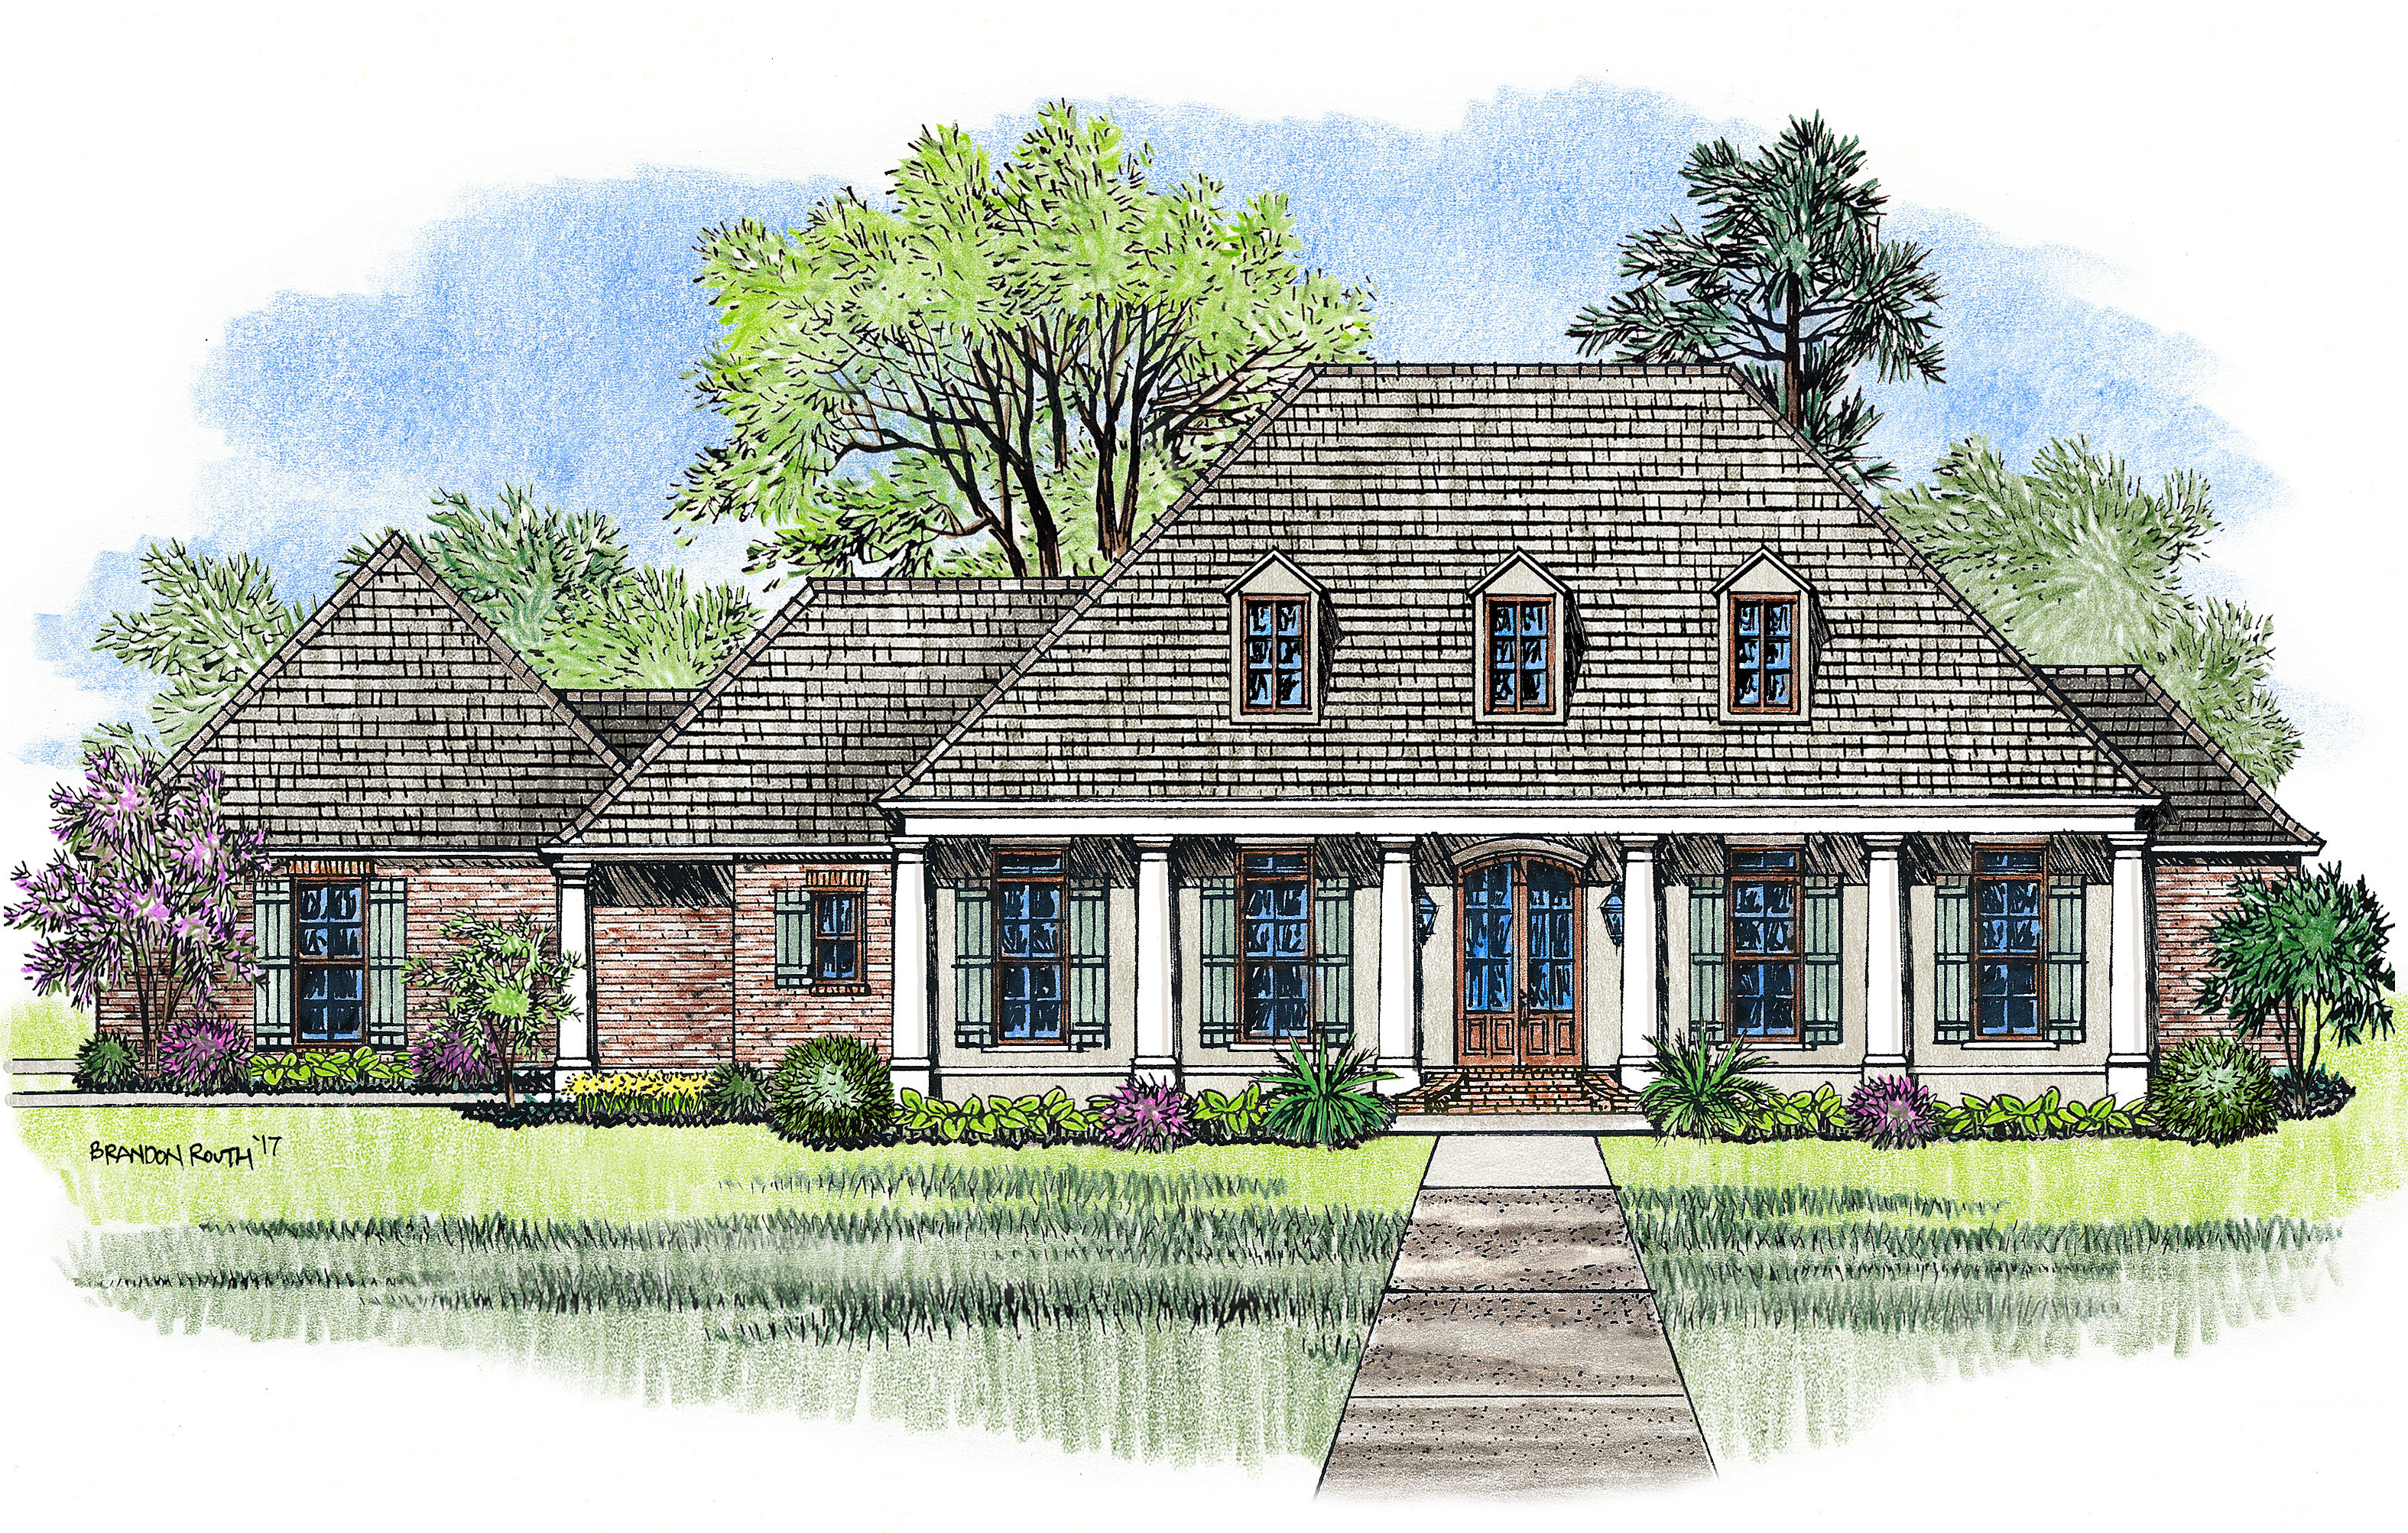 Madden Home Design French Country house plans Acadian house plans